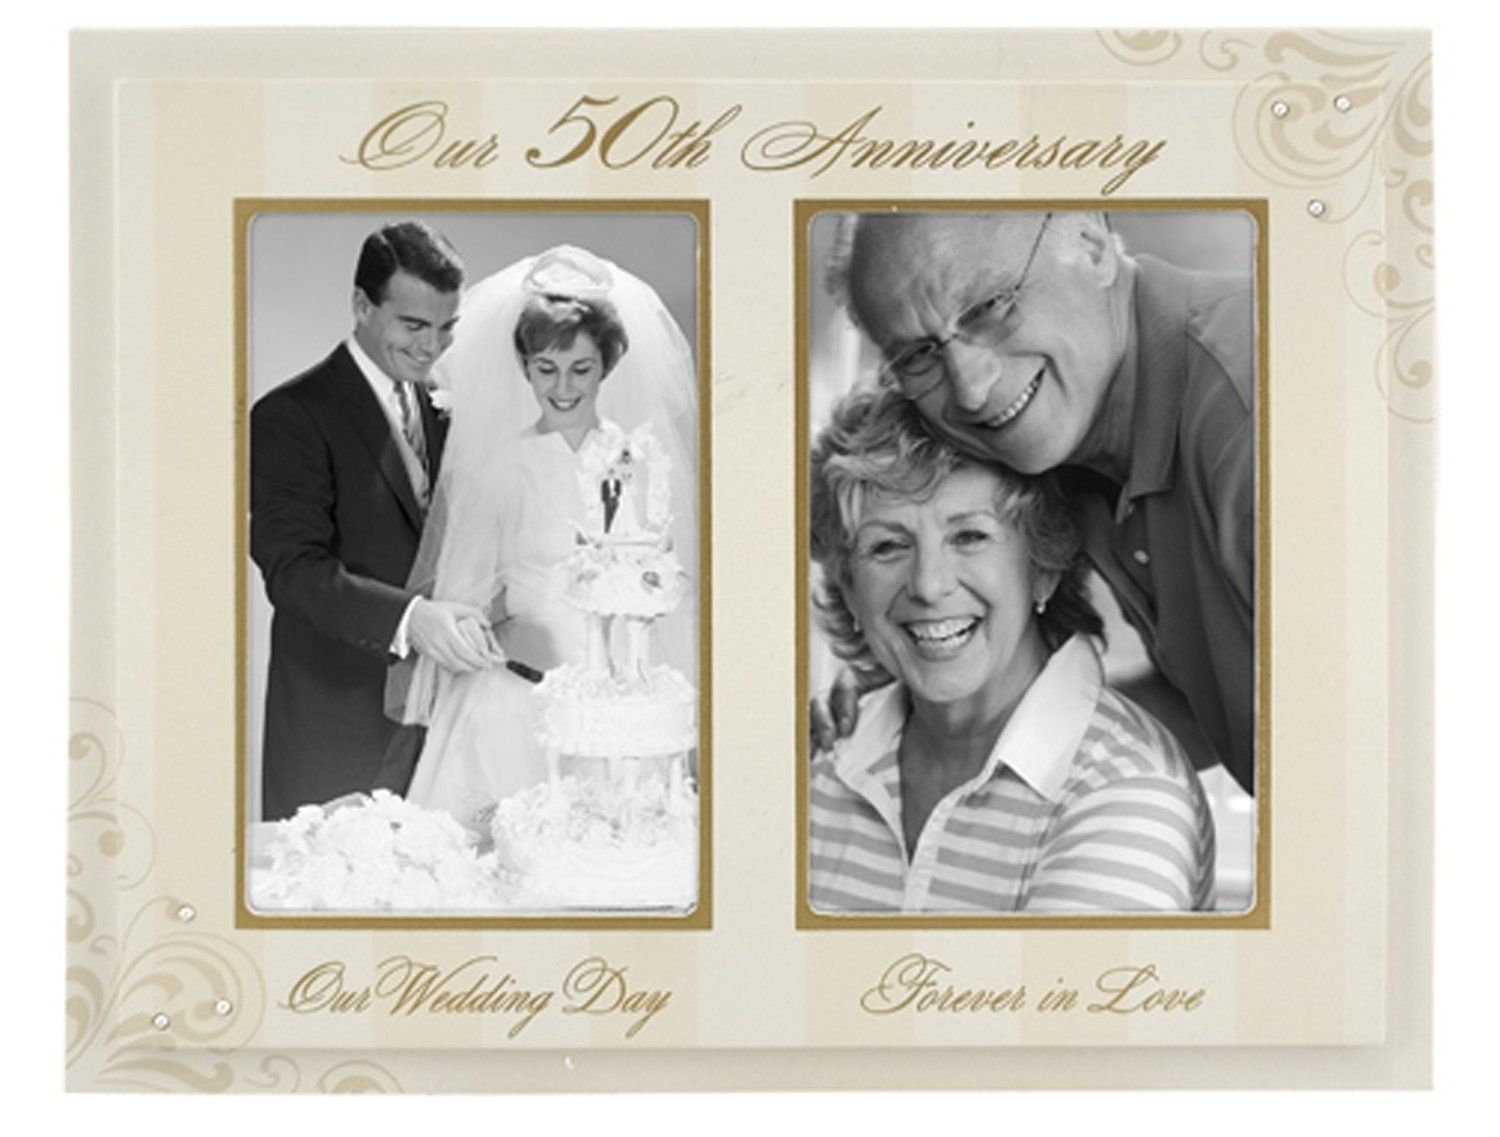 Golden Wedding Gift Ideas For Parents: 50th Wedding Anniversary Gift Ideas For